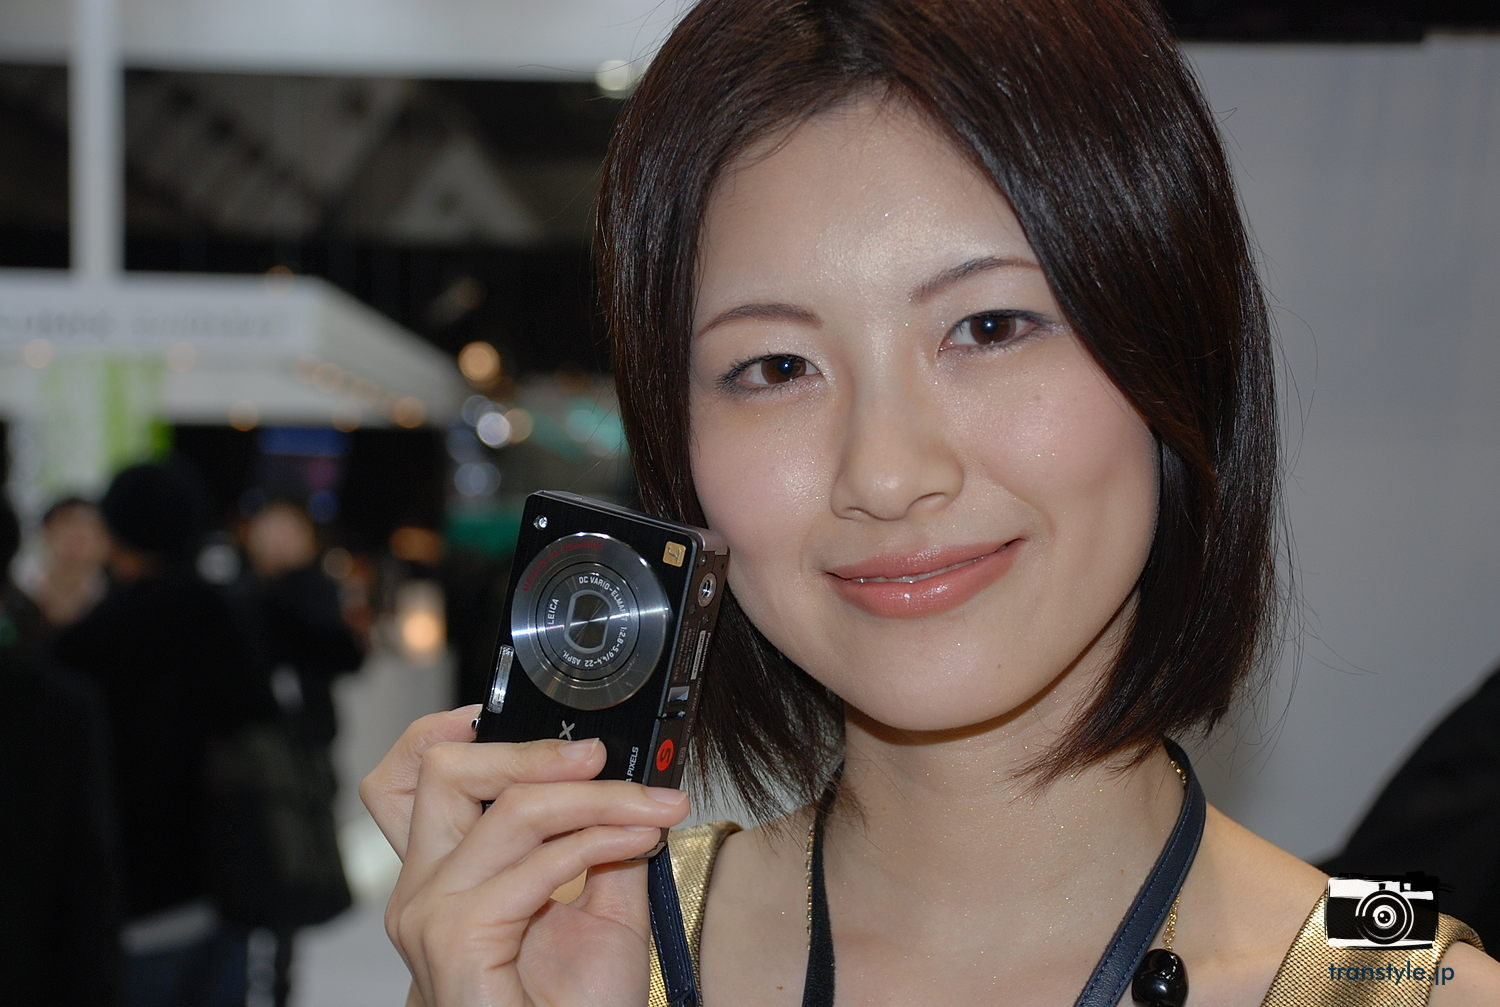 transtyle.jp_photo-imaging-Expo2008_0184